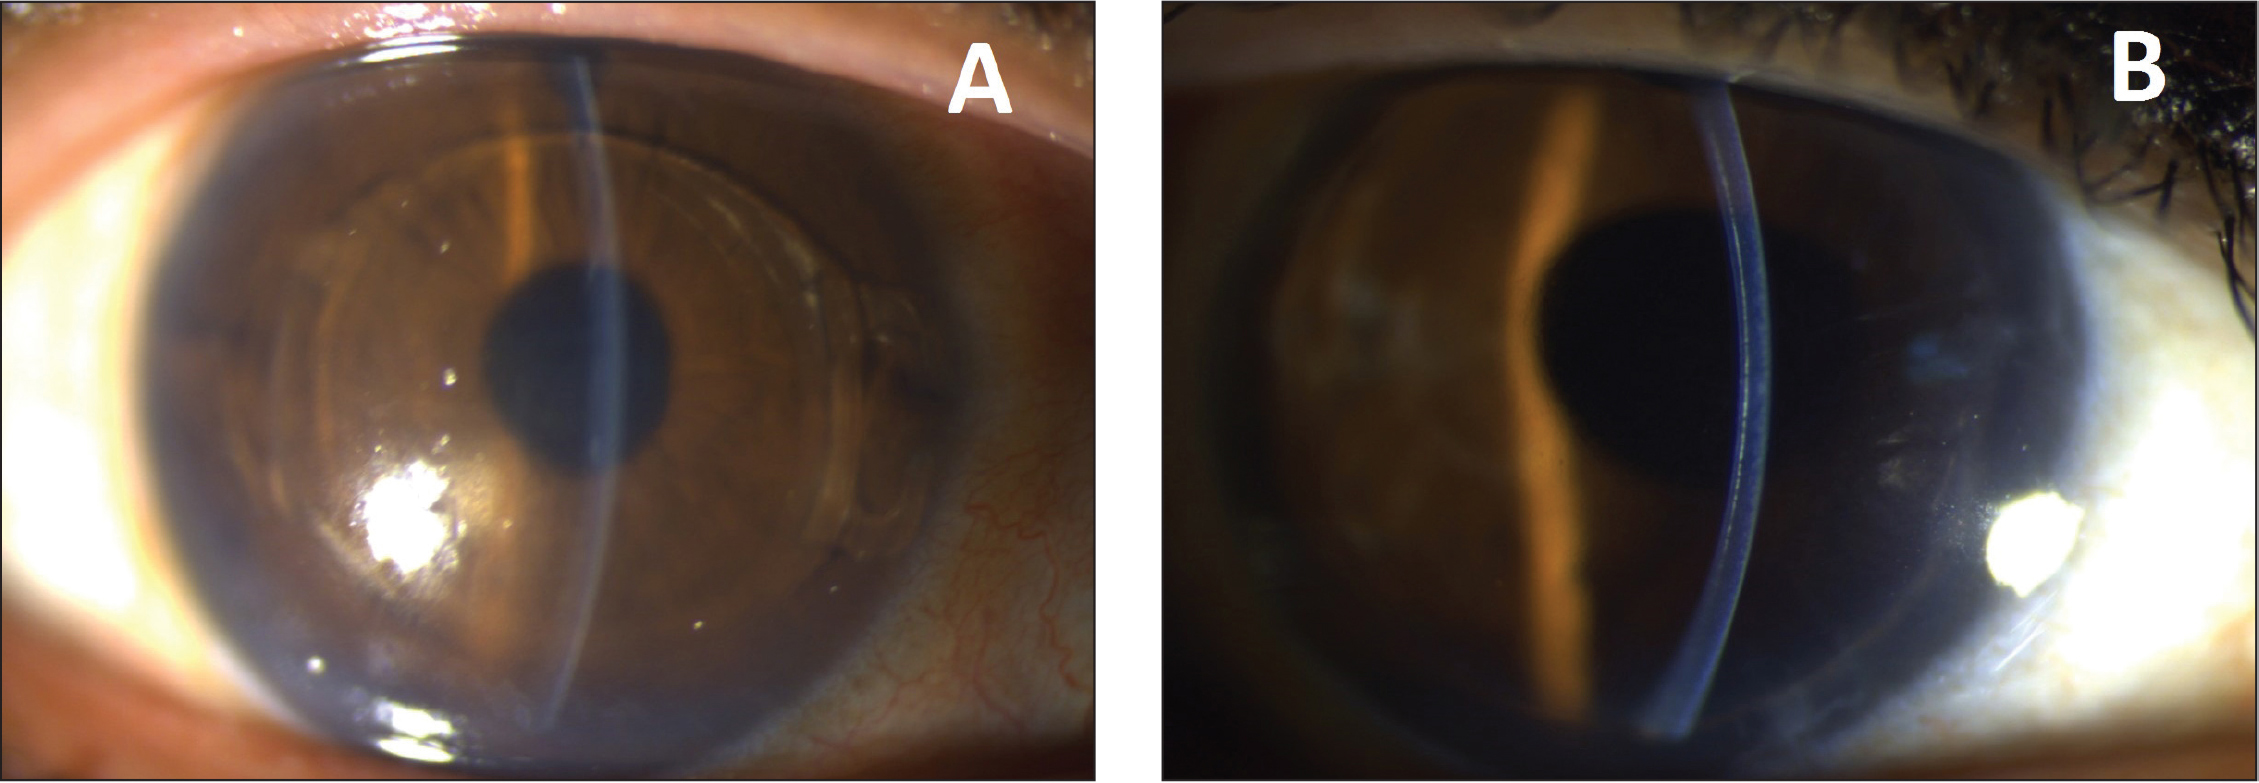 (A) Right eye of a 52-year-old patient with Artiflex (OPHTEC BV, Groningen, The Netherlands) implantation who was lost to follow-up and presented 12 years after surgery with gradually decreased vision (UDVA: 20/100). Preoperative data (before phakic intraocular lens [pIOL] implantation): UDVA: counting fingers; manifest refraction: − 6.25 −0.25 × 10; CDVA: 20/20; ACD: 3.20 mm; AQD: 2.60 mm; ECD: 2,686 cells/mm2. Post pIOL implantation data: UDVA: 20/22; manifest refraction: 0.00 −0.50 × 055; CDVA: 20/20. (B) Same eye, 5 months after Artiflex removal combined with phacoemulsification, posterior chamber IOL implantation, and Descemet stripping automated endothelial keratoplasty (DSAEK). UDVA: 20/100; manifest refraction: −1.50 −1.00 × 45; CDVA: 20/25; ECD: 1,952 cells/mm2. UDVA = uncorrected distance visual acuity; CDVA = corrected distance visual acuity; ACD = anterior chamber depth; ECD = endothelial cell density; AQD = aqueous depth